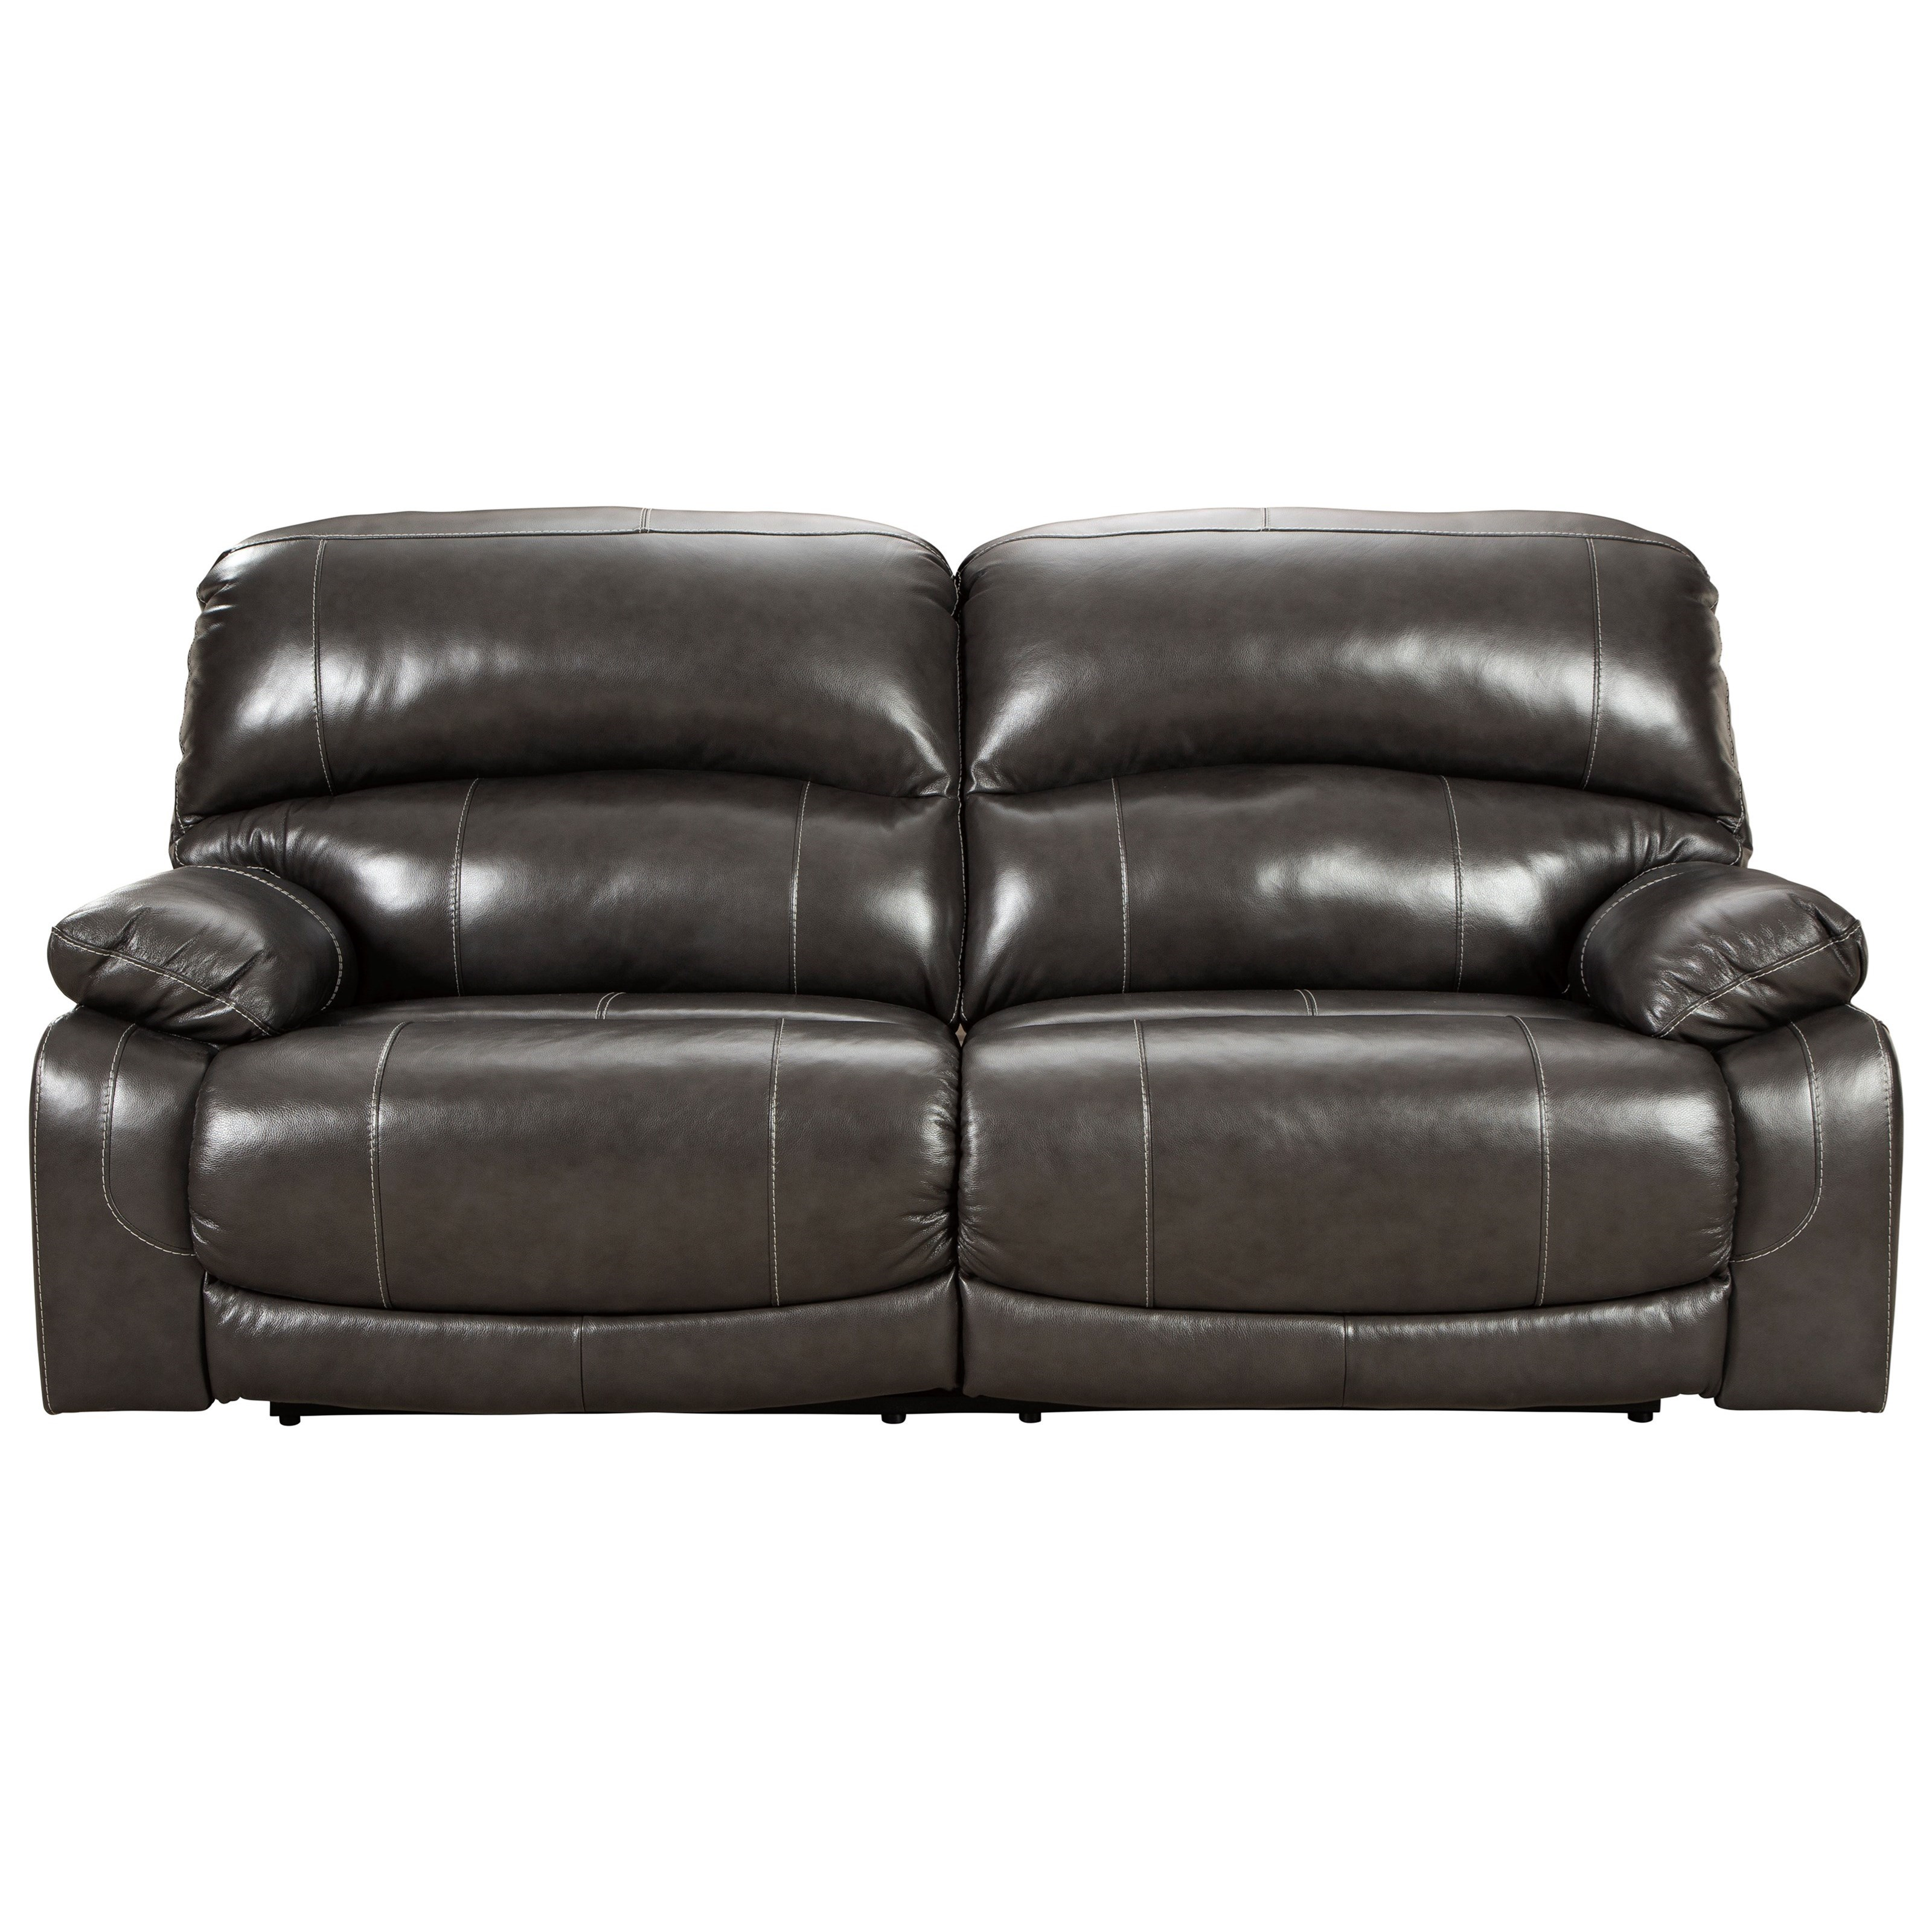 Hallstrung 2 Seat Reclining Power Sofa by Signature Design by Ashley at Northeast Factory Direct